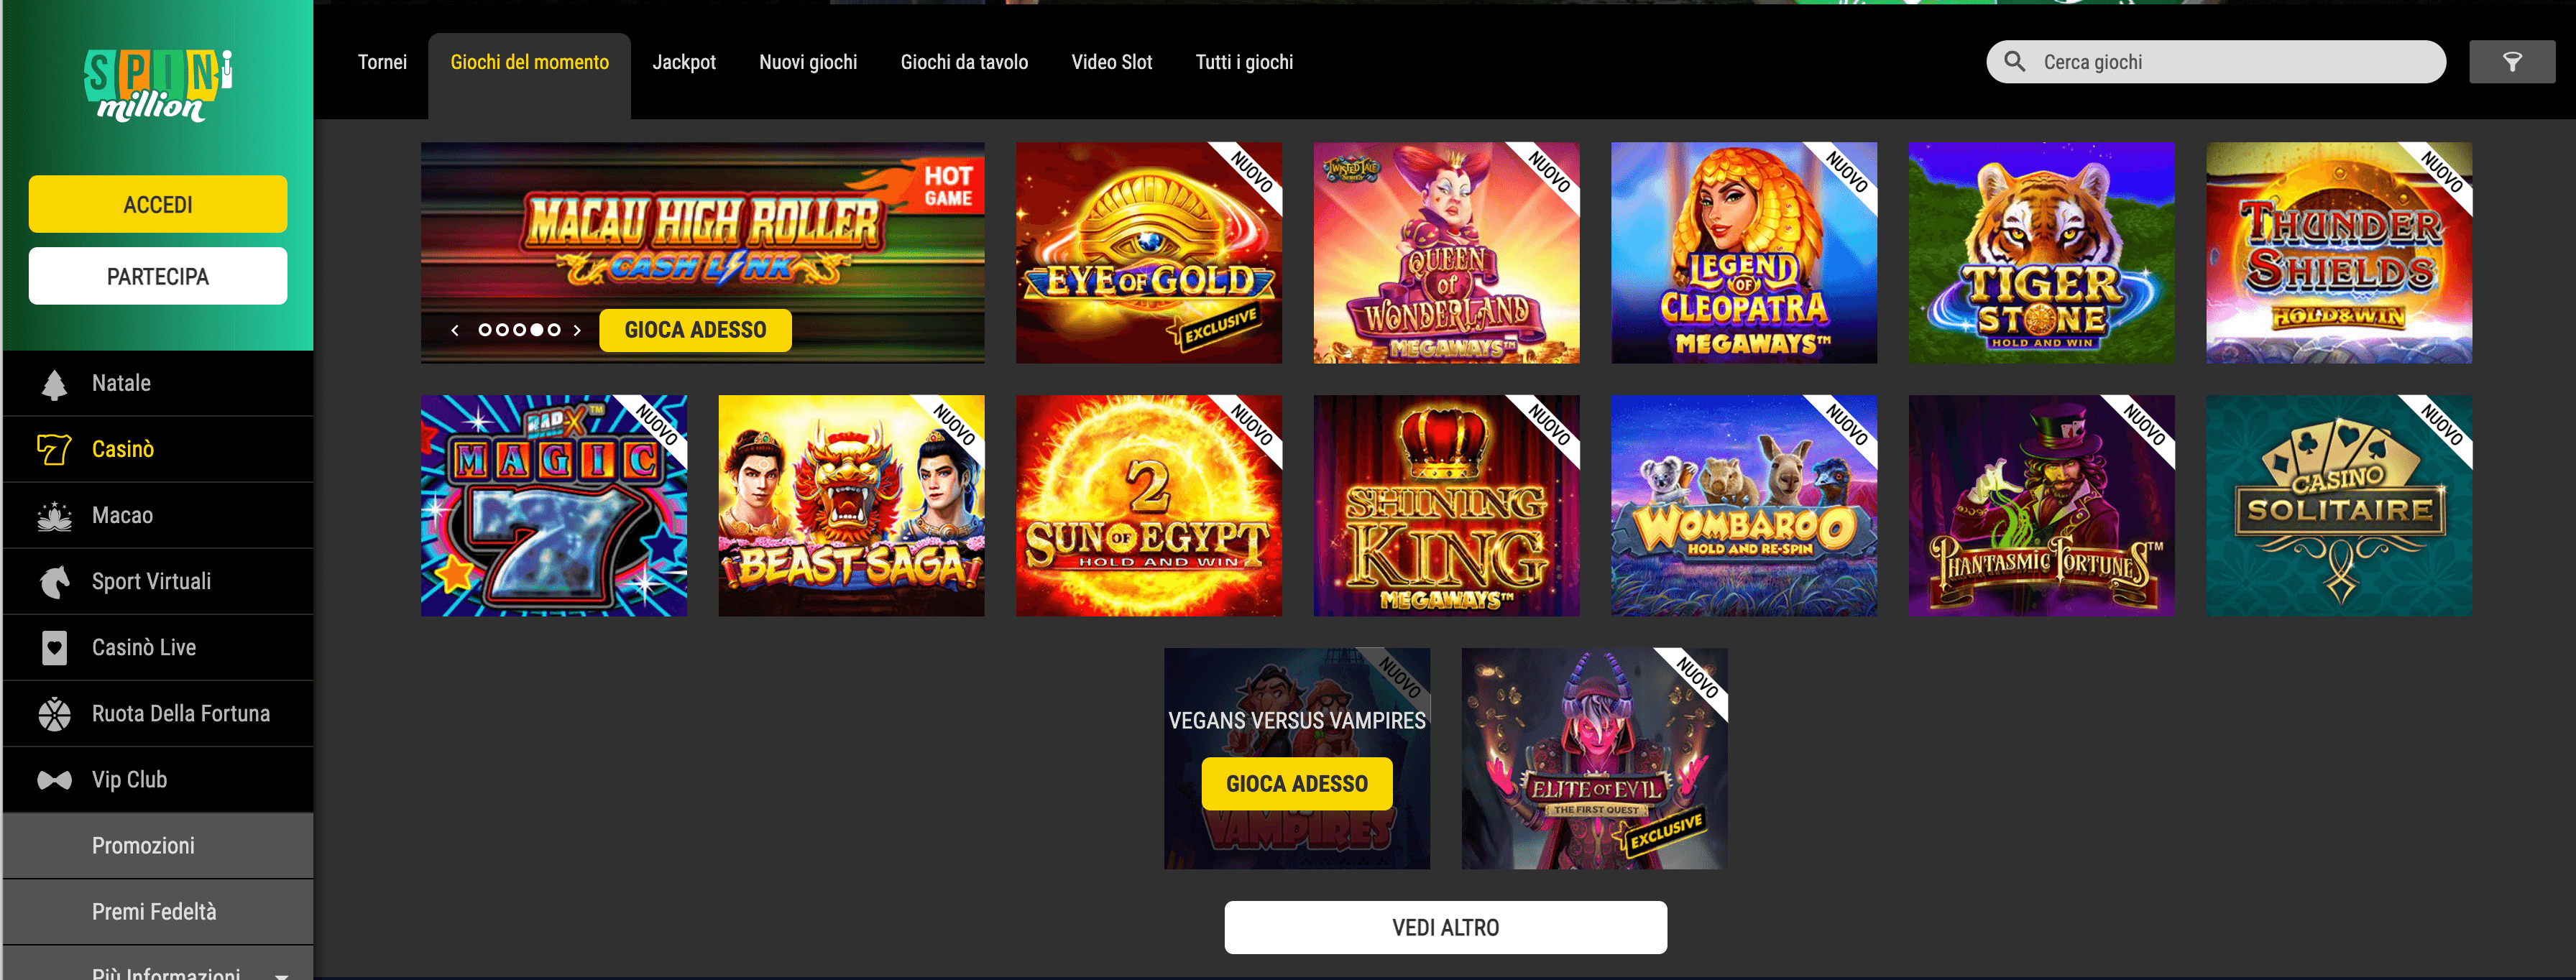 spin million casino giochi slot